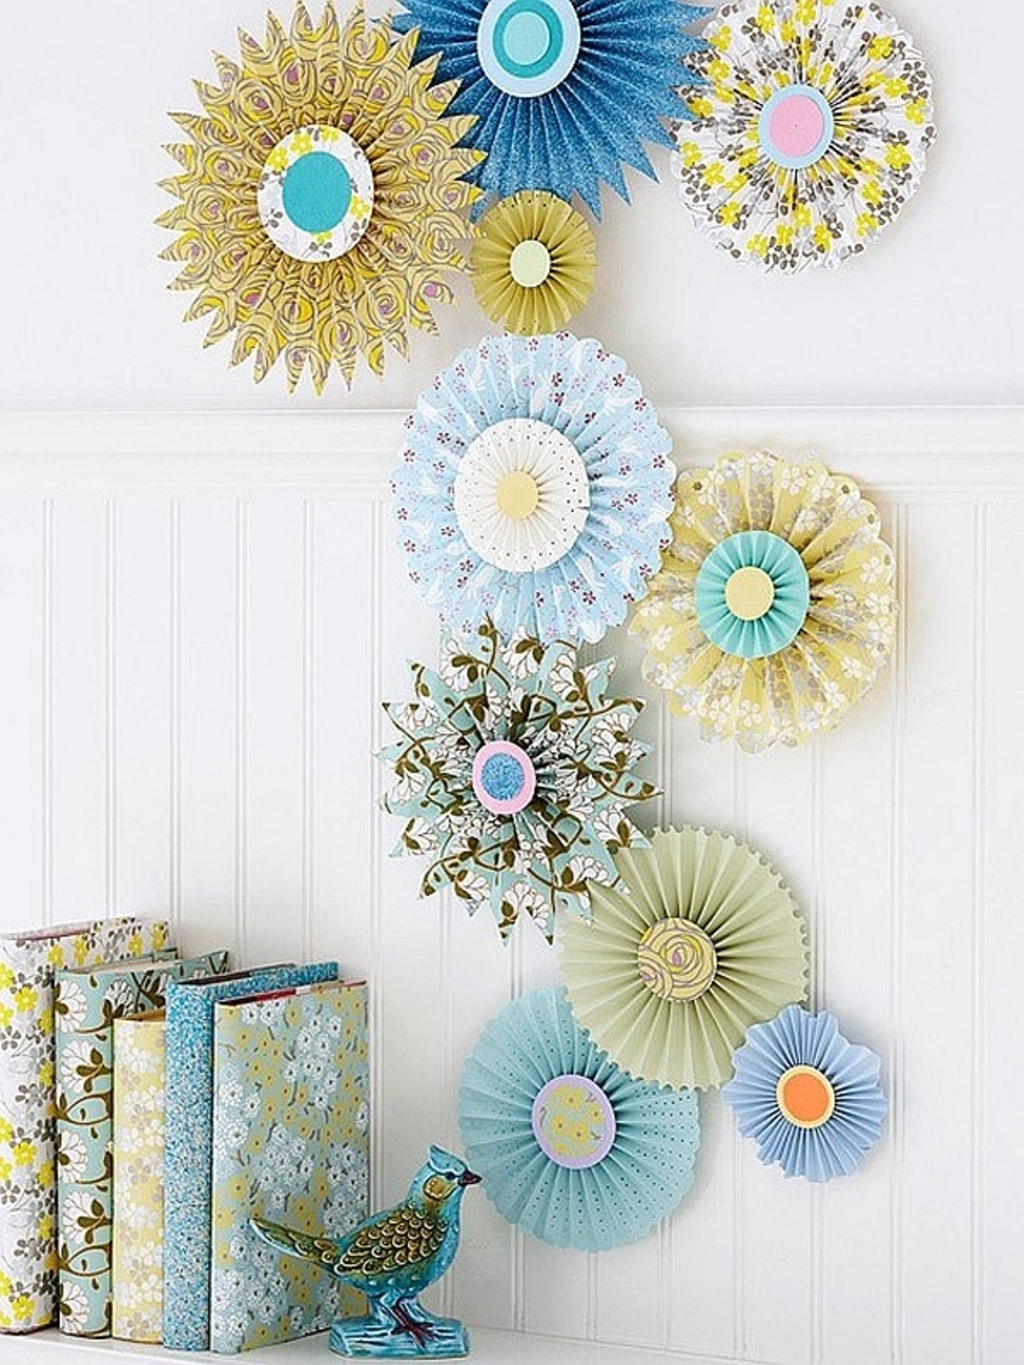 Diy Projects: Paper Wall Art Crafts – Paper Inspired Décor: Fun Ways With Most Recent Paper Wall Art (View 11 of 20)